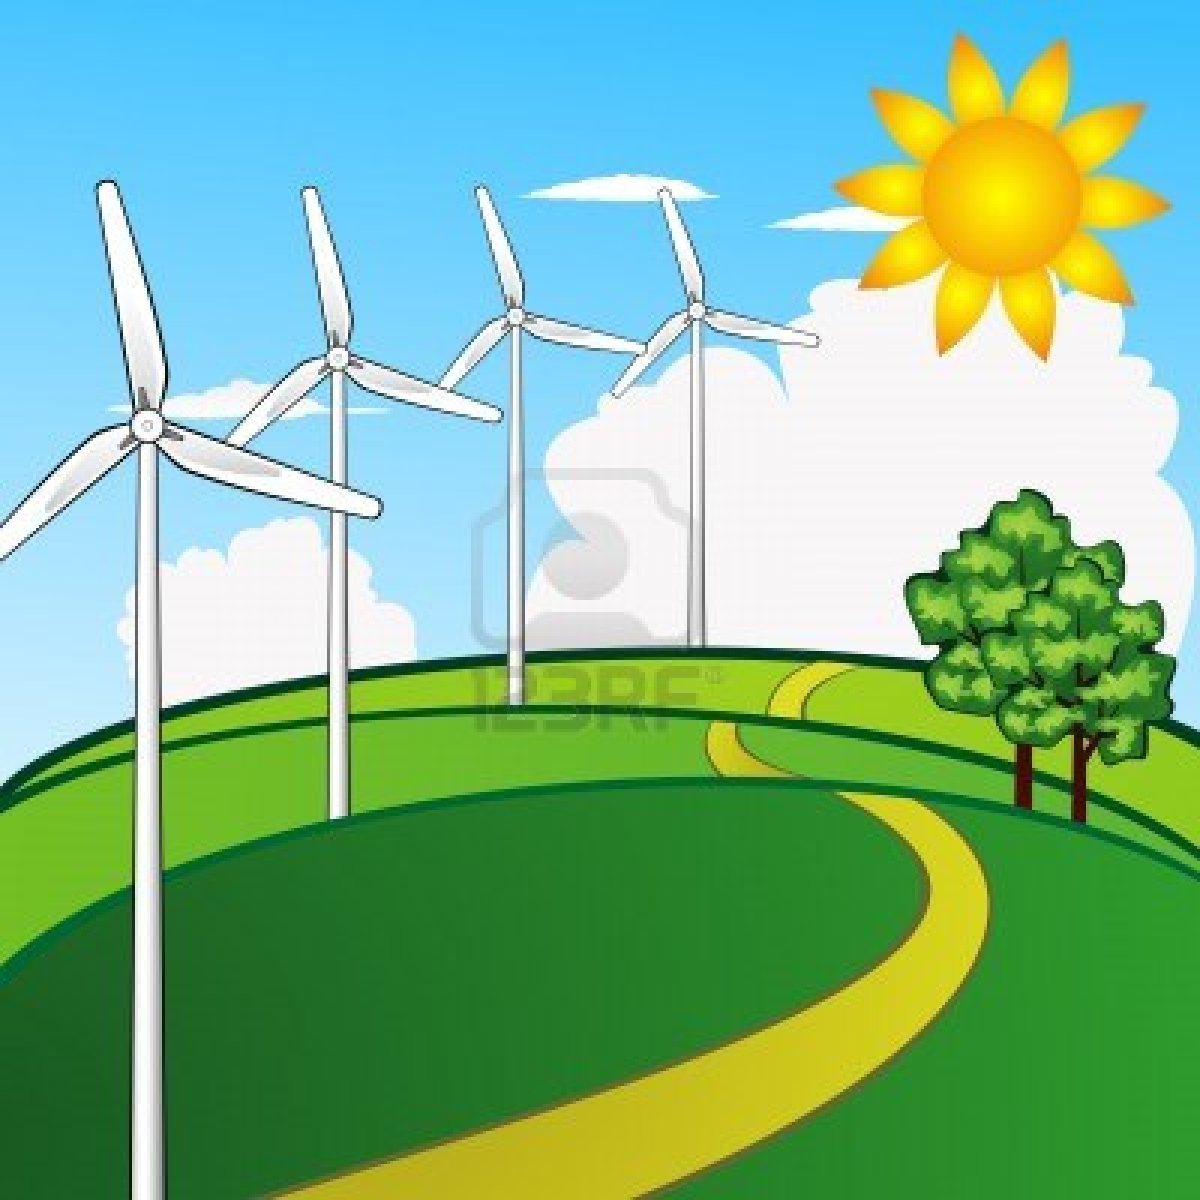 Energy clipart energy windmill & Products Accessories Electrical MKC